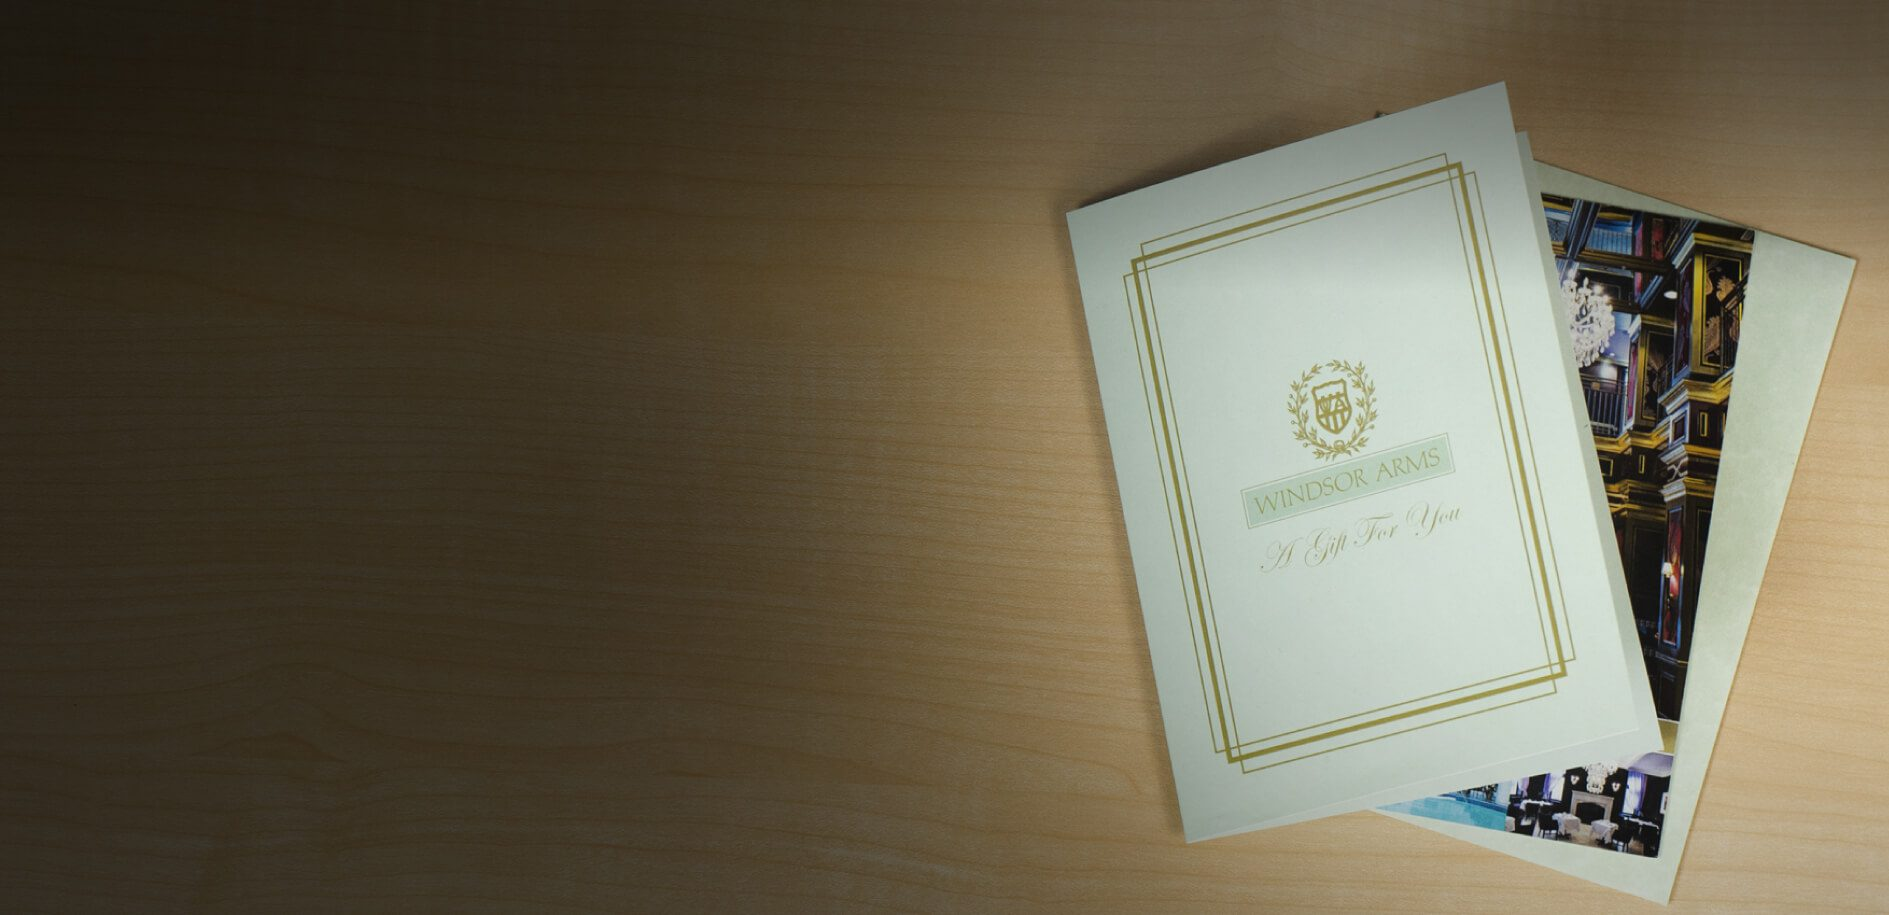 Windsor Arms Hotel giftcard